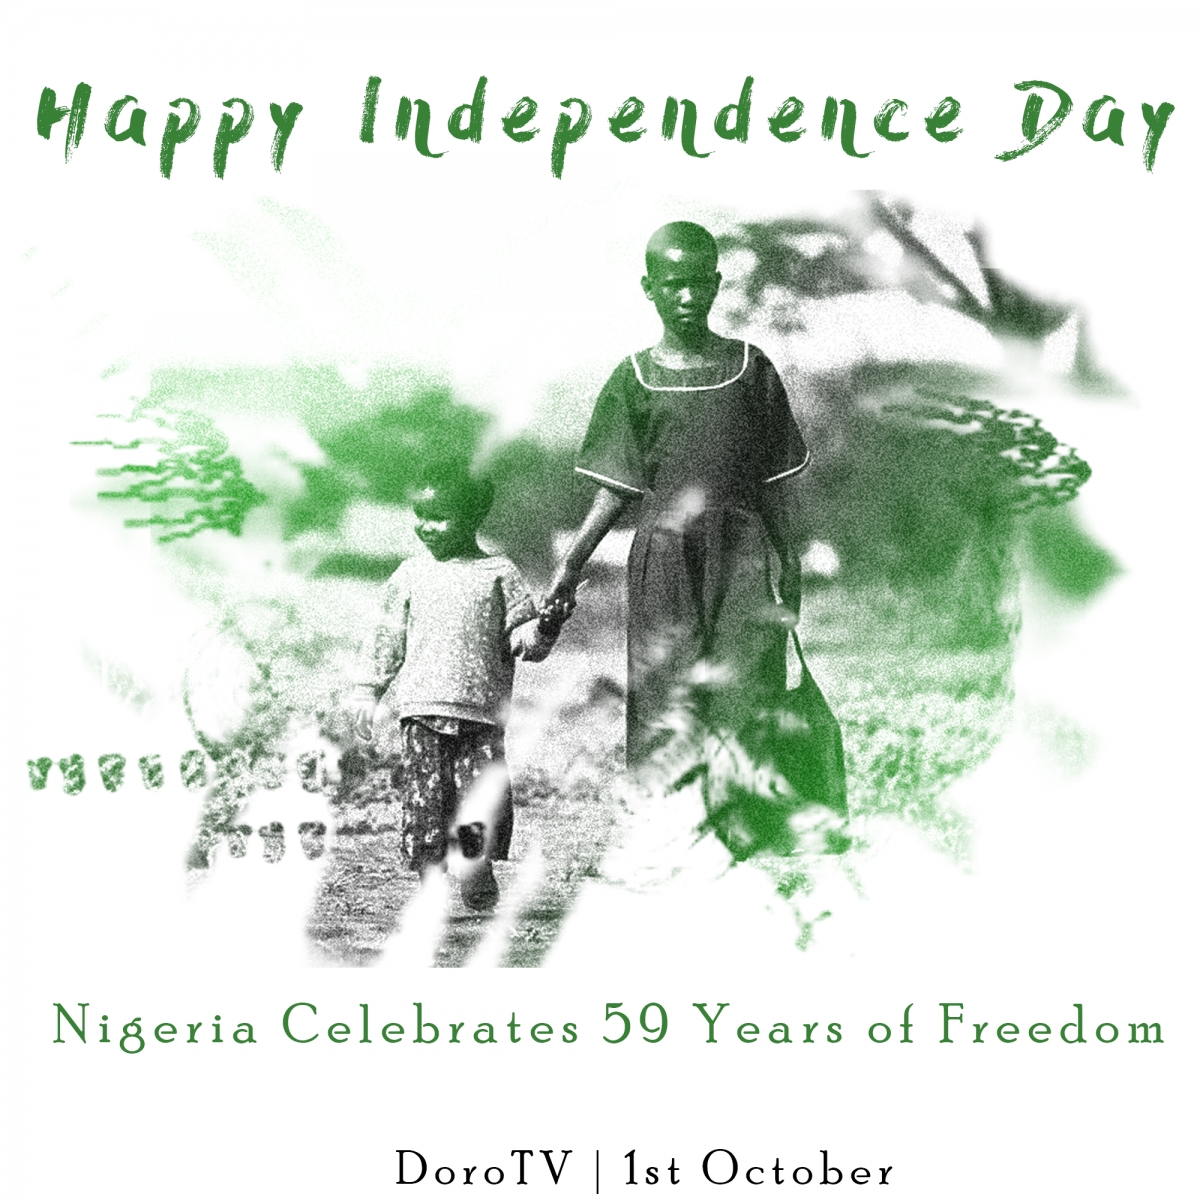 Celebrating Nigeria at 59 - Independence Day